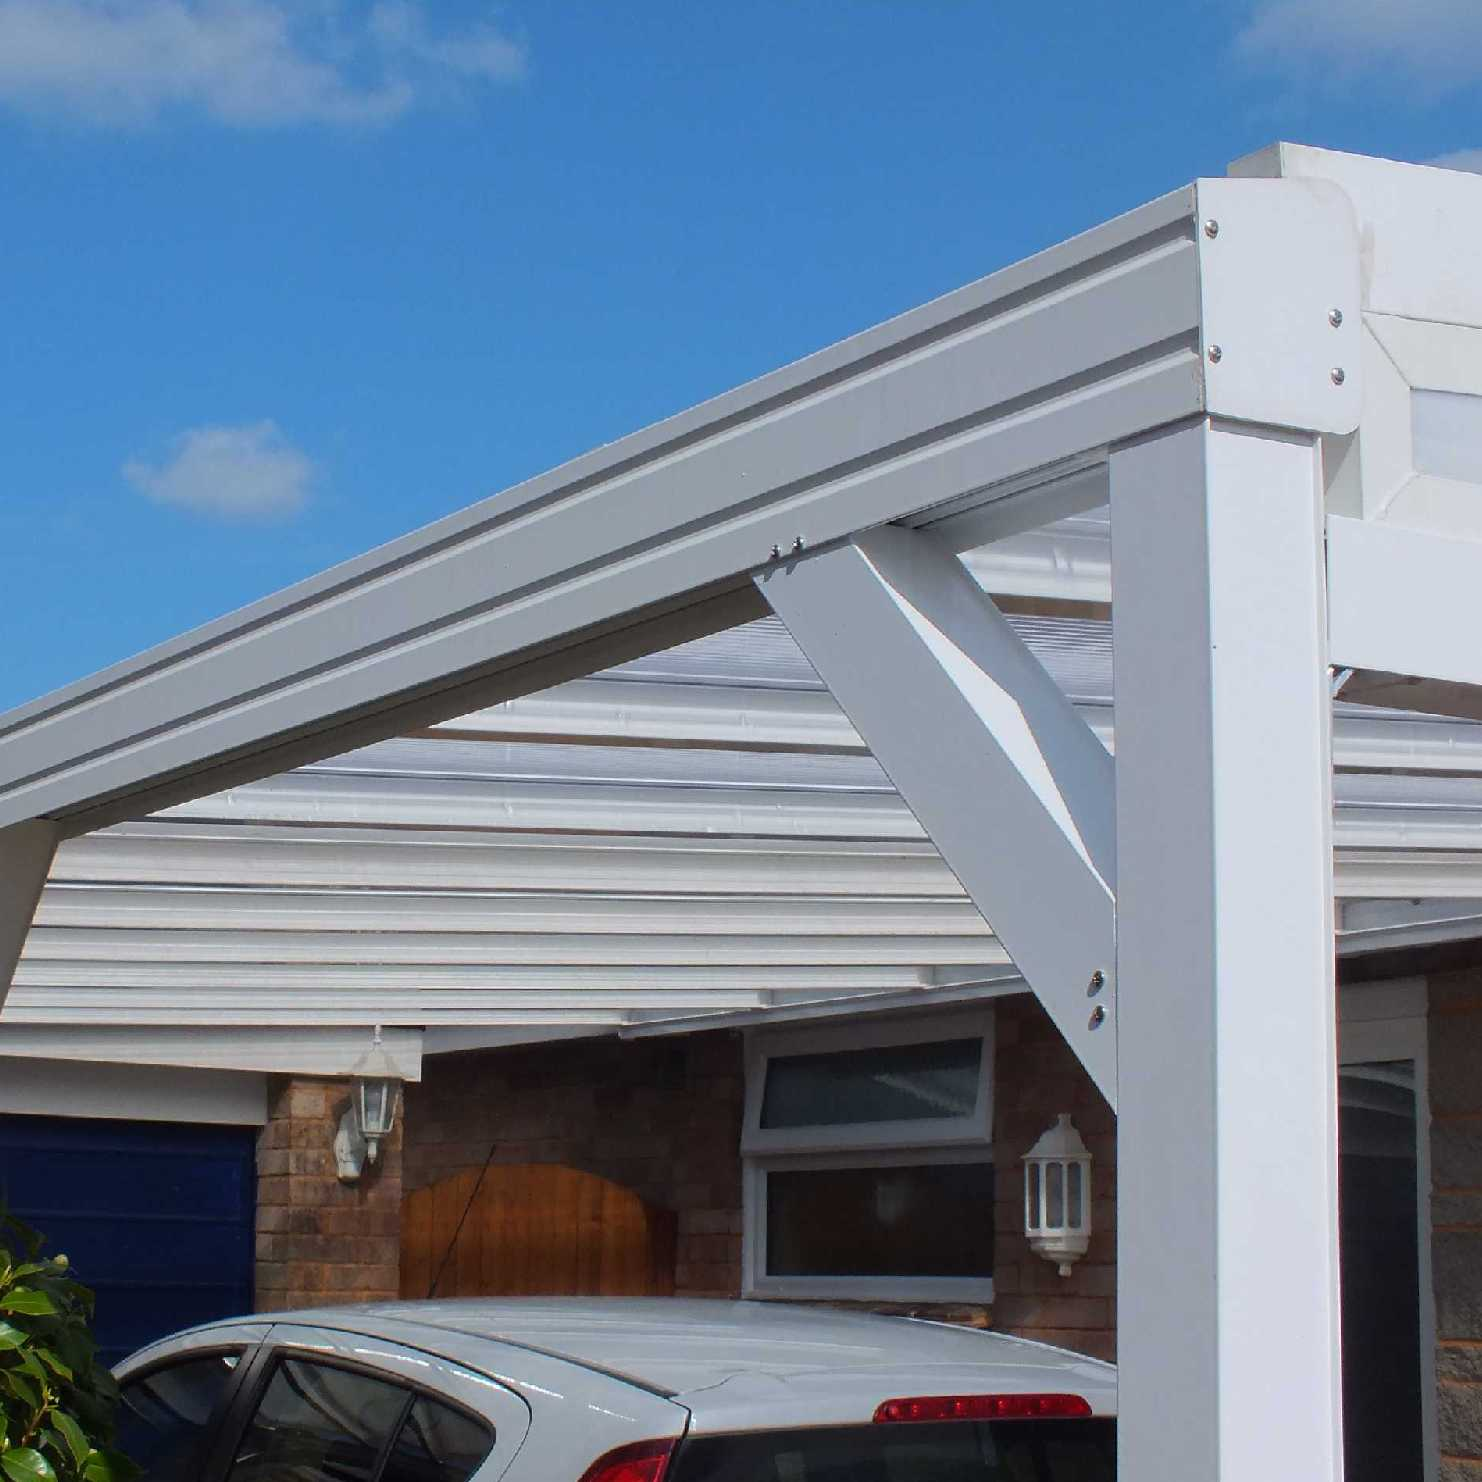 Buy Omega Smart WhiteLean-To Canopy with 16mm Polycarbonate Glazing - 8.4m (W) x 2.0m (P), (4) Supporting Posts online today